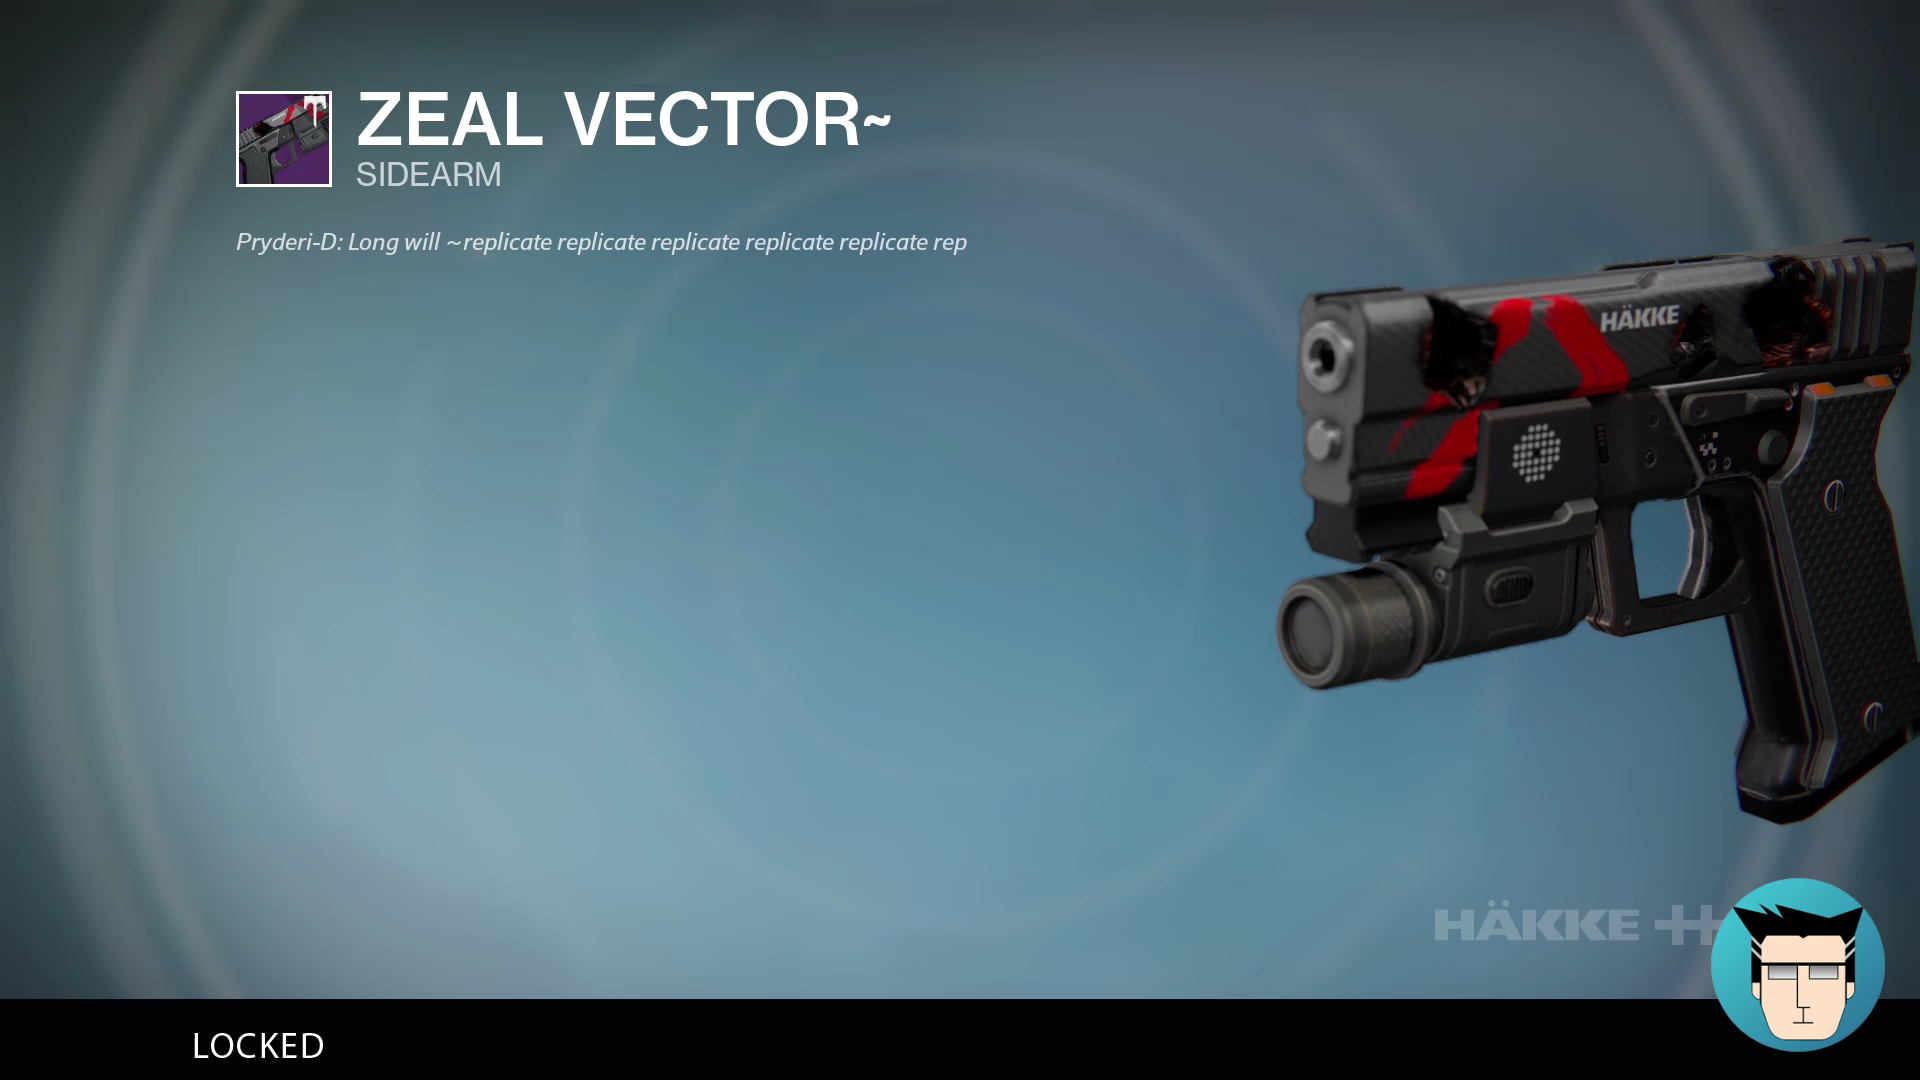 Zeal Vector | Locked